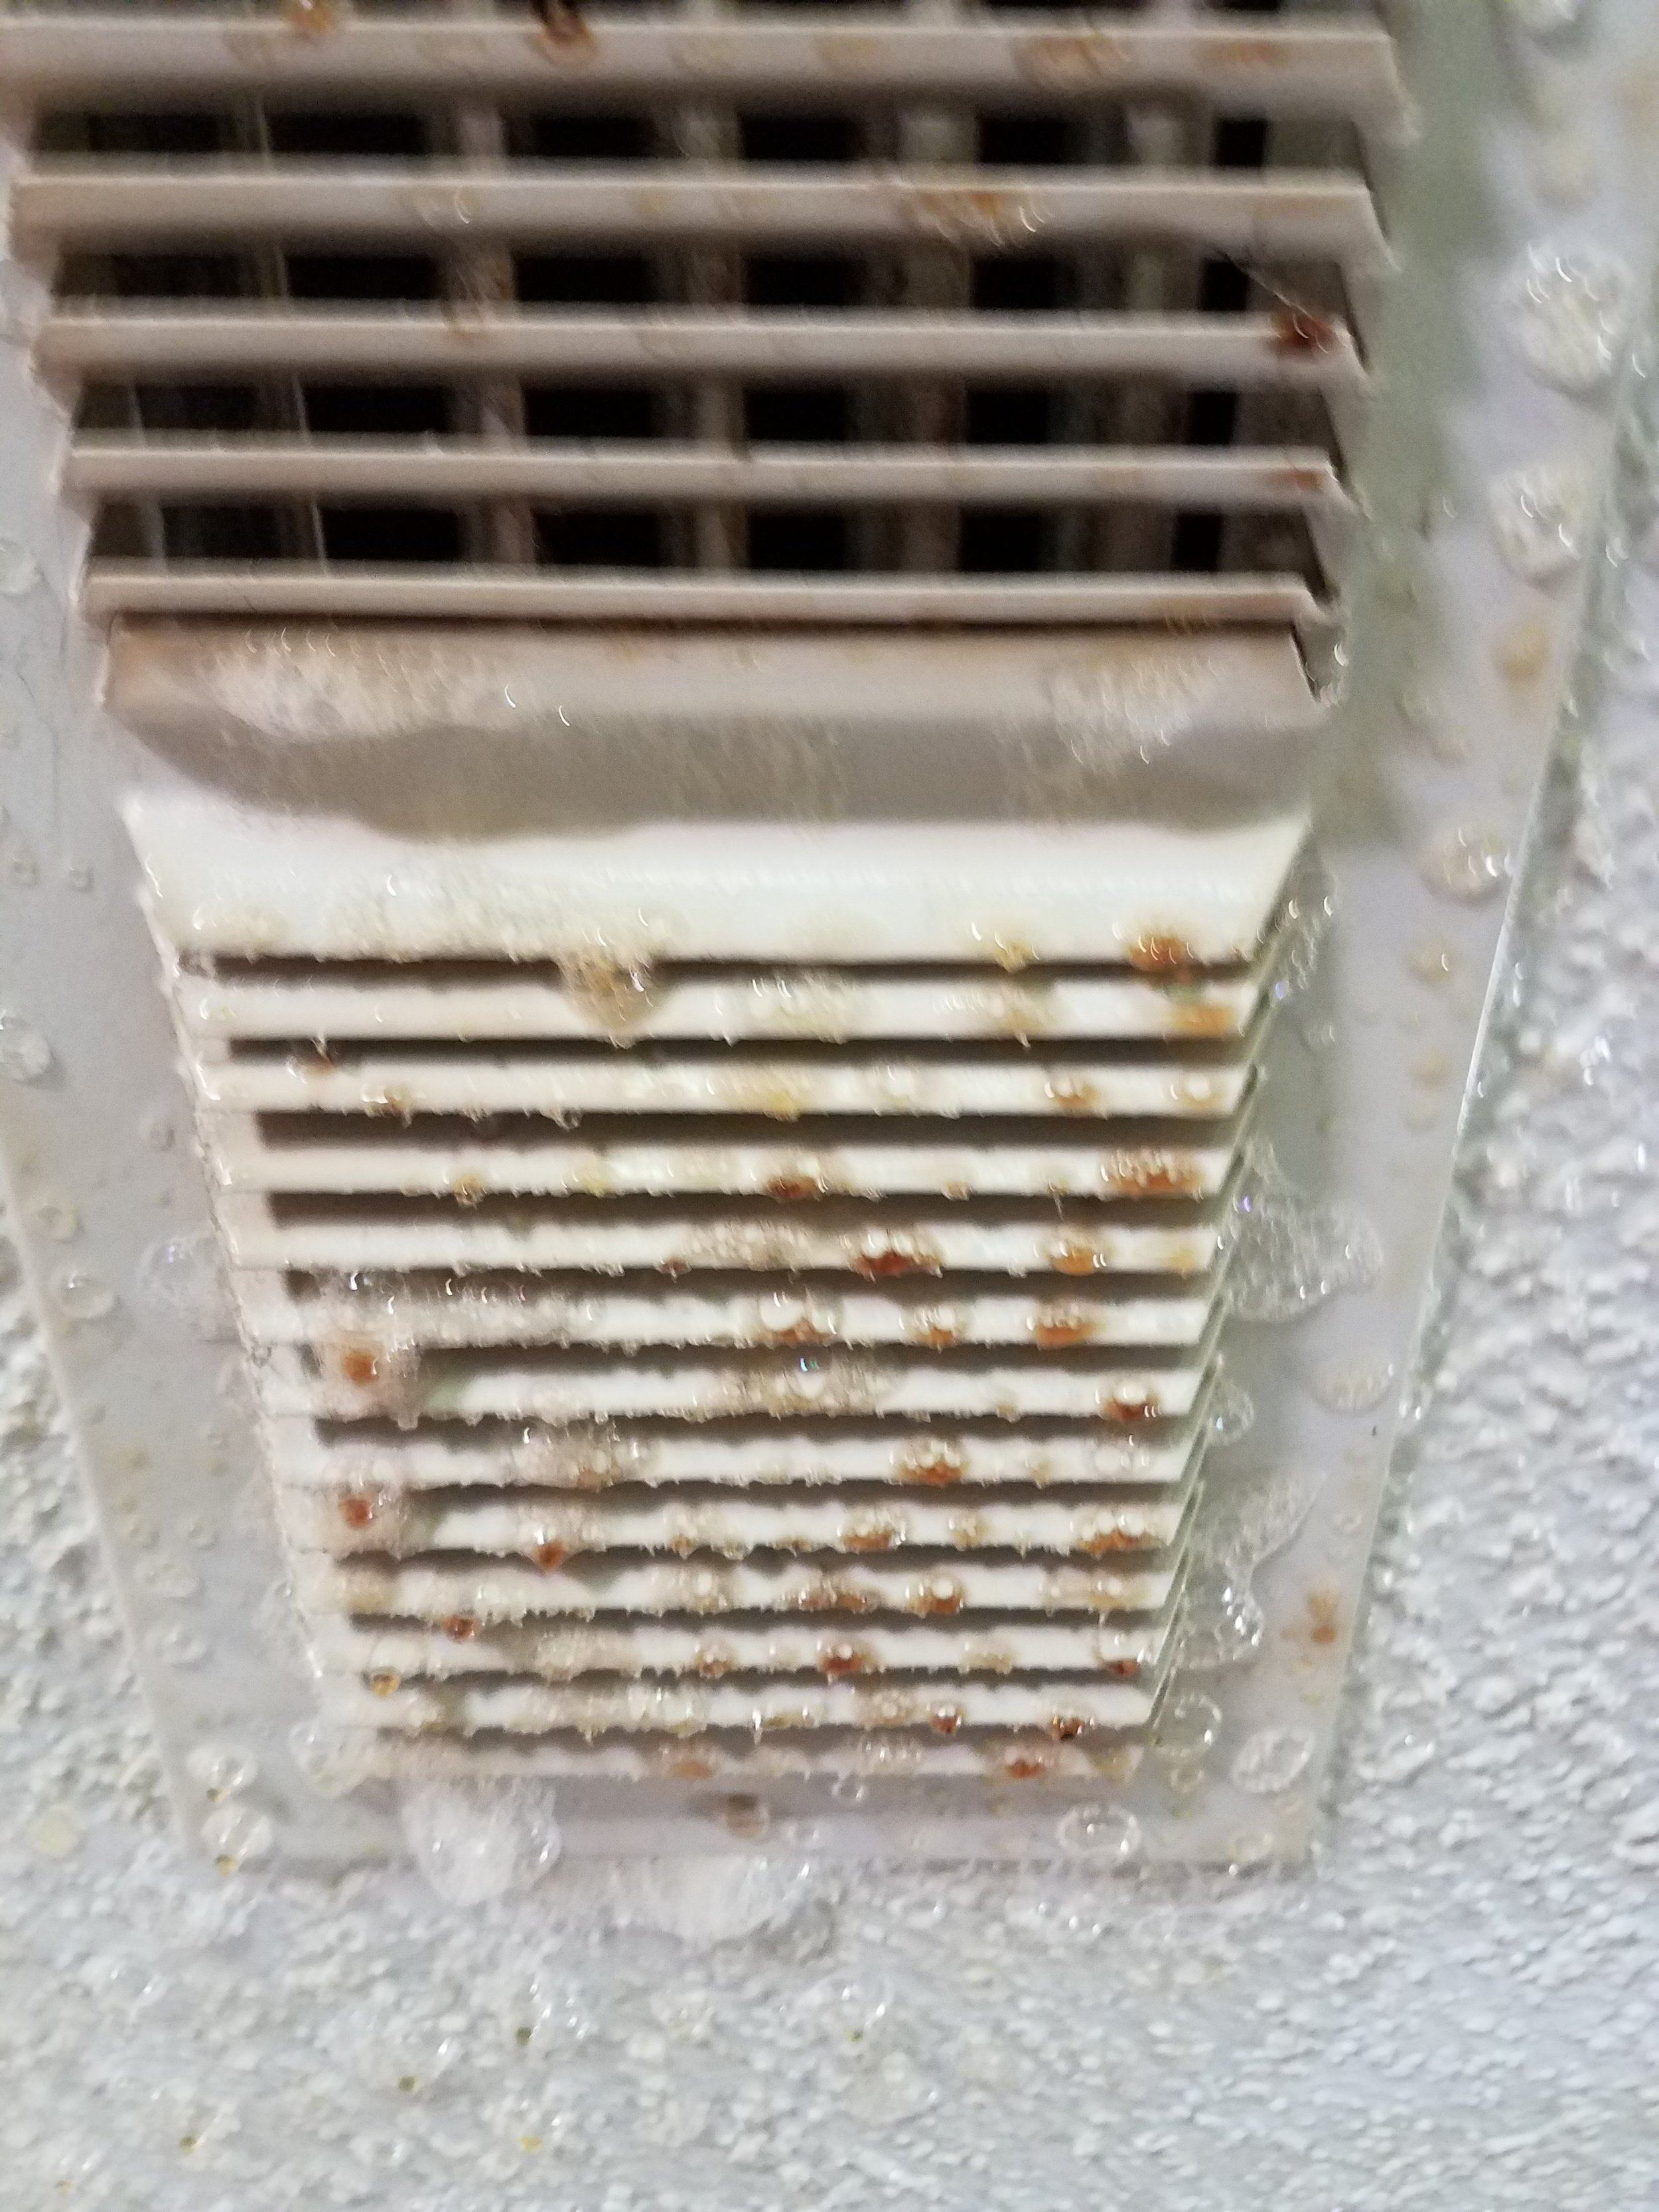 HVAC CLEANING AND ODOR REMOVAL - DUCTWORK WAS TREATED AND VENTS CLEANED FOR OUR CLIENT